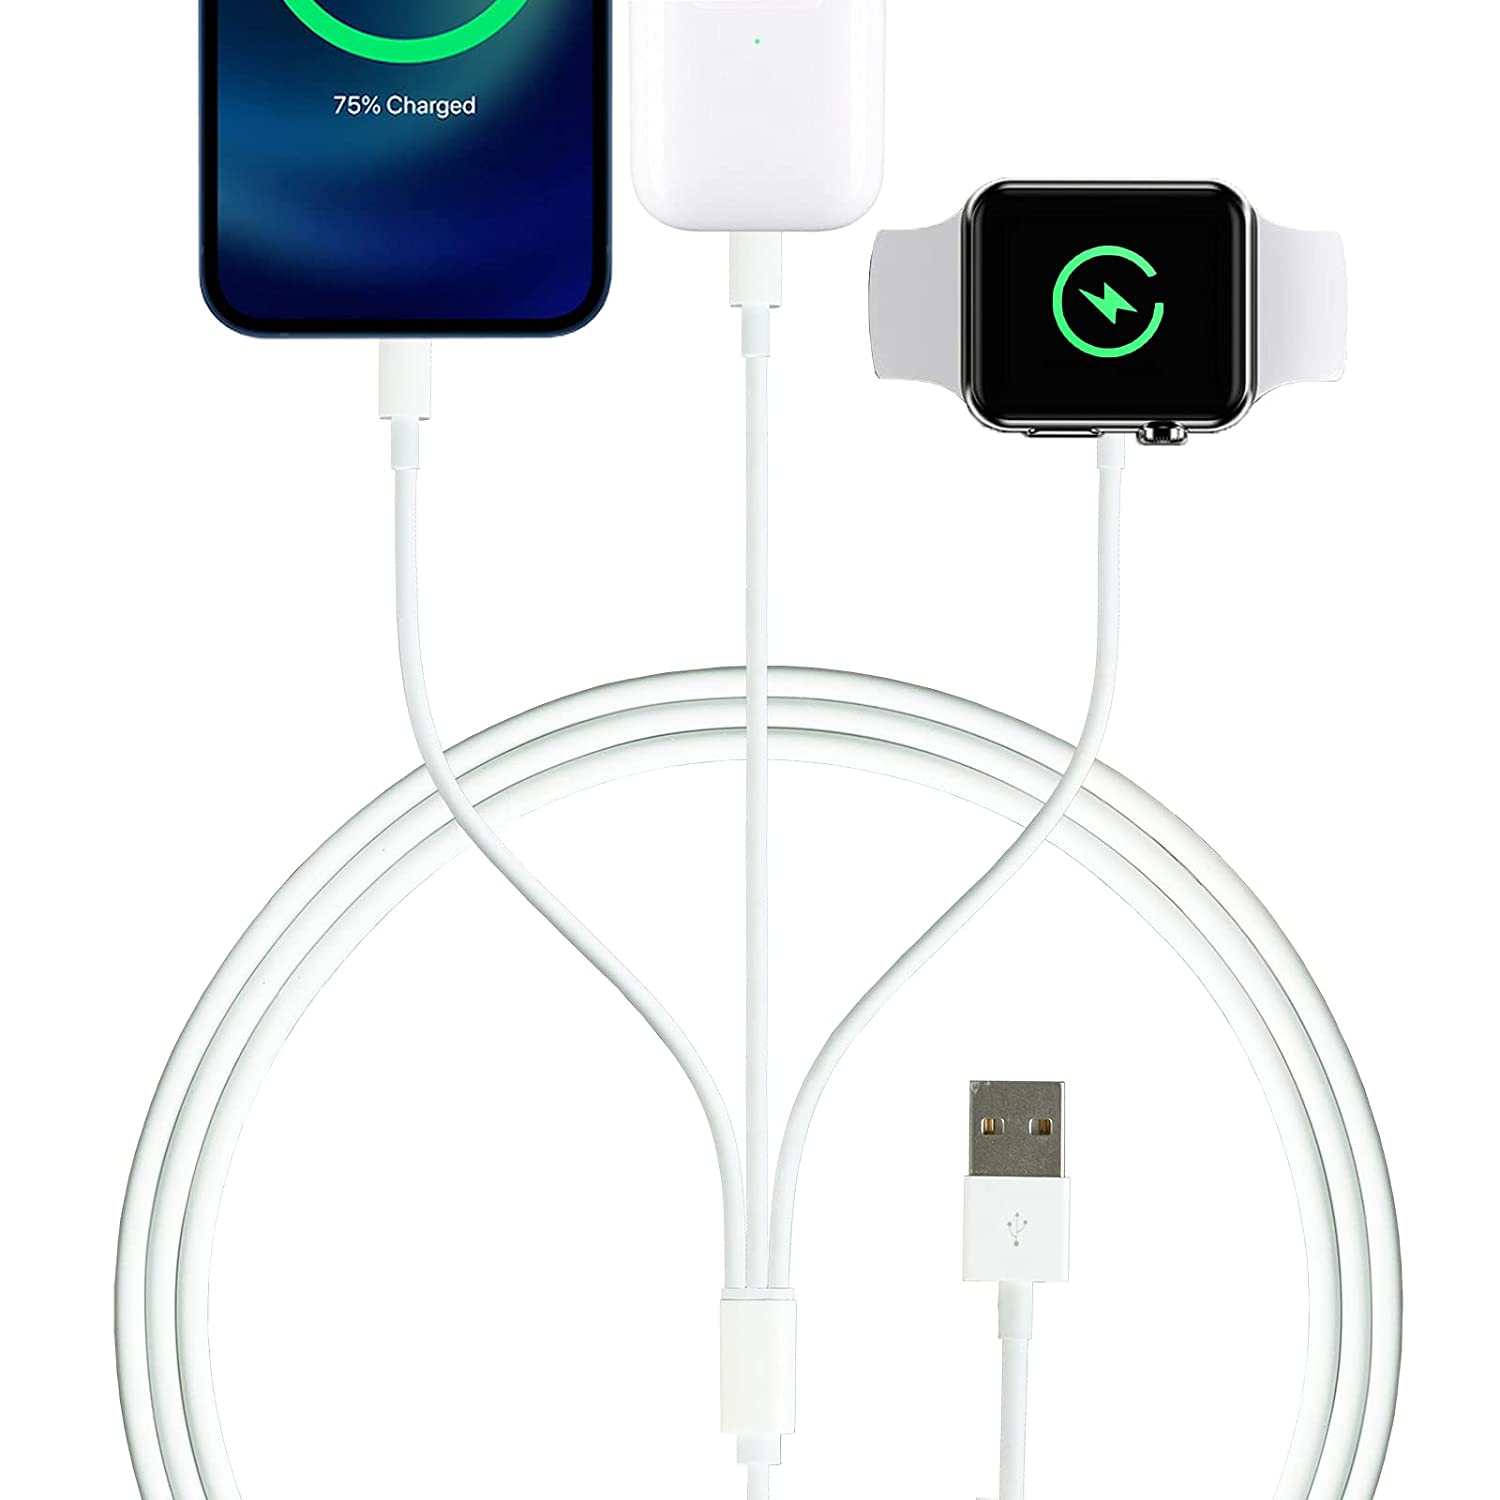 iWatch Charger Cable, Wansurs 3 in 1 Cable for iPhone and Watch Charger Compatible with Watch Series 1 2 3 4 5 6 SE and Phone 5-13 ProMax, Travel Portable Charging Cord (1M)